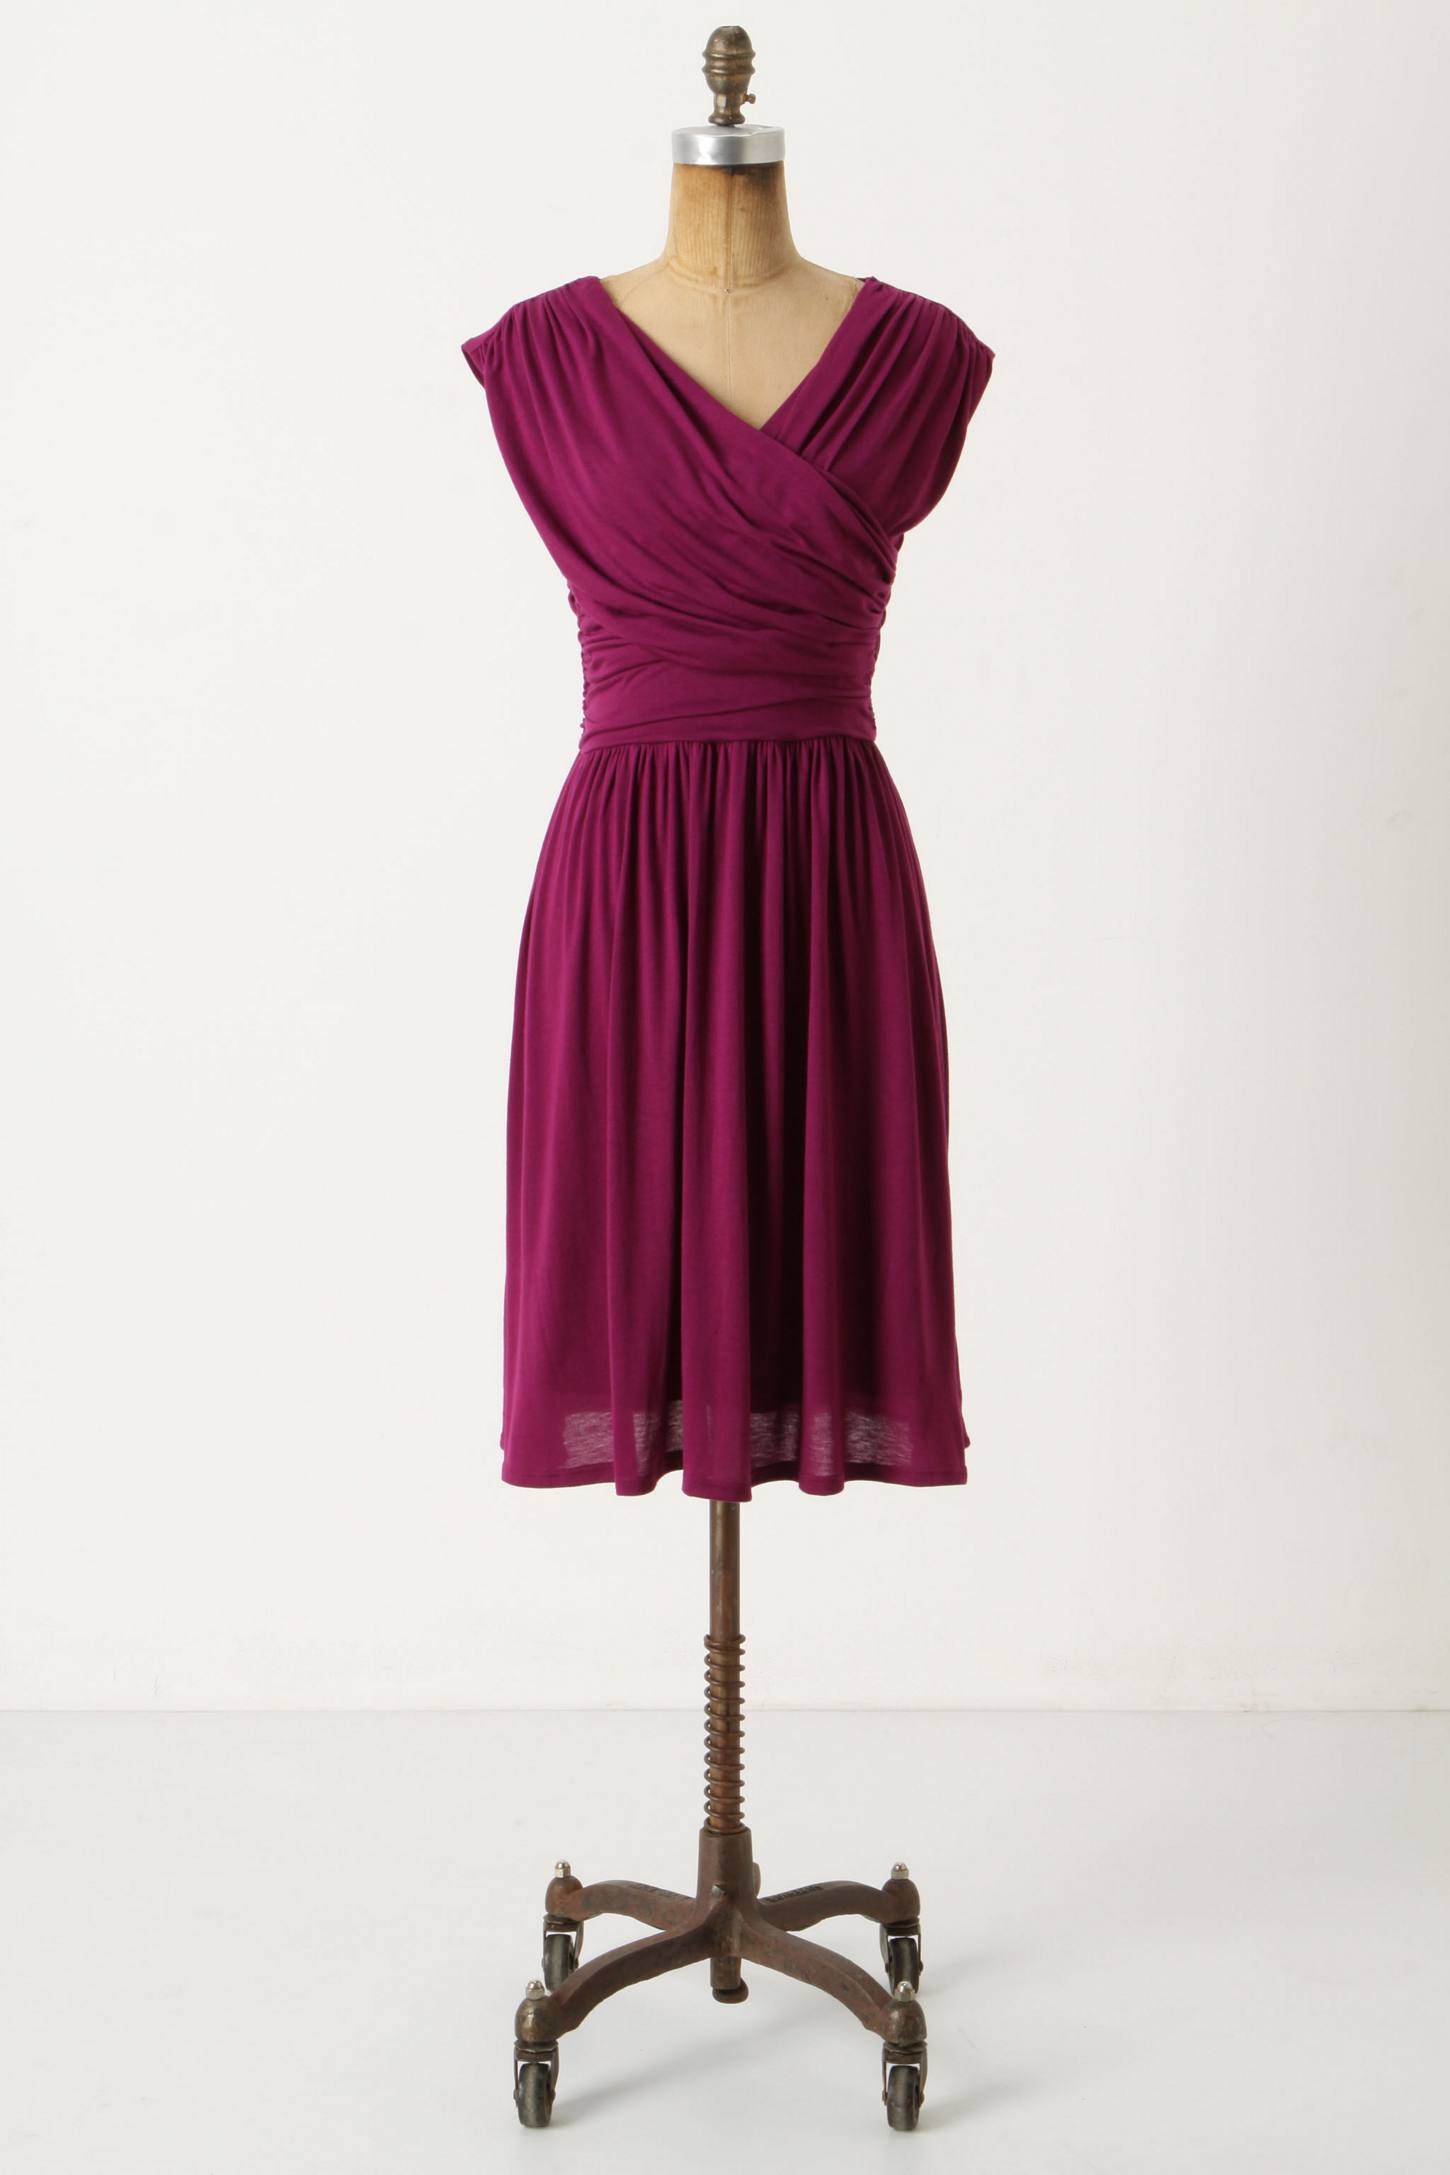 Whirligig Dress - Anthropologie.com from anthropologie.com